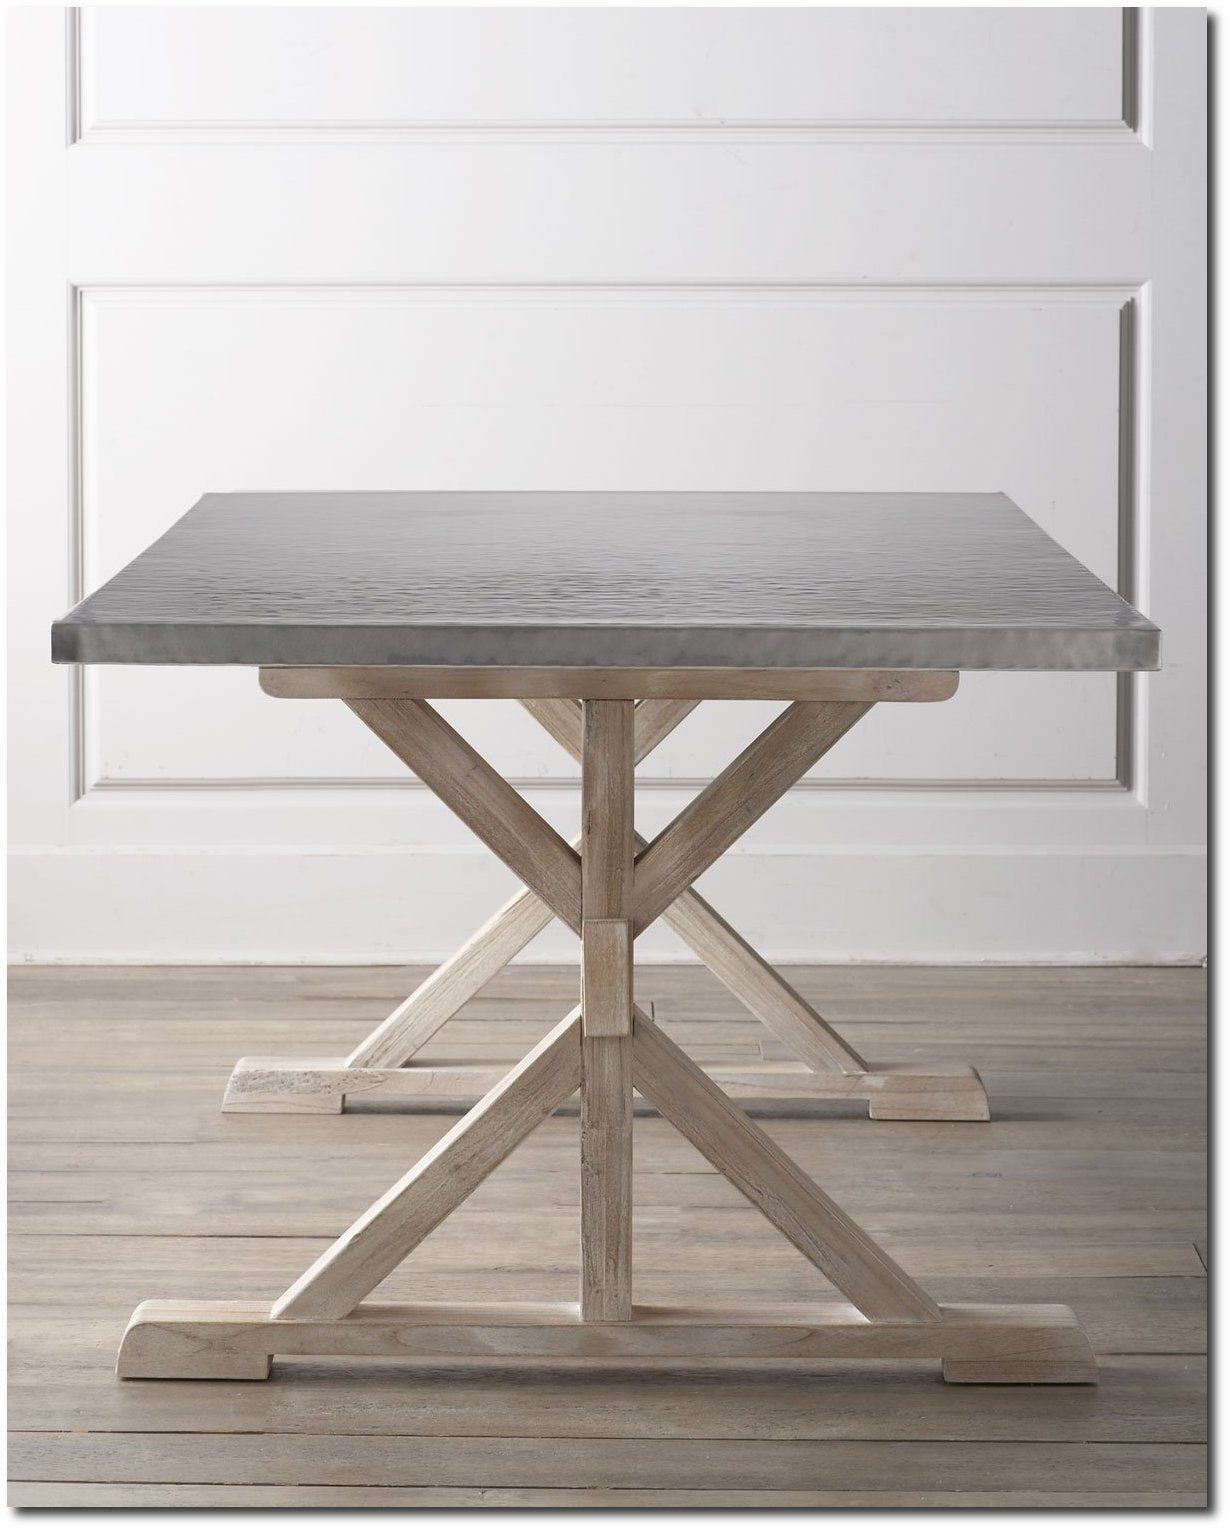 Ordinaire Stainless Steel Top Dining Table